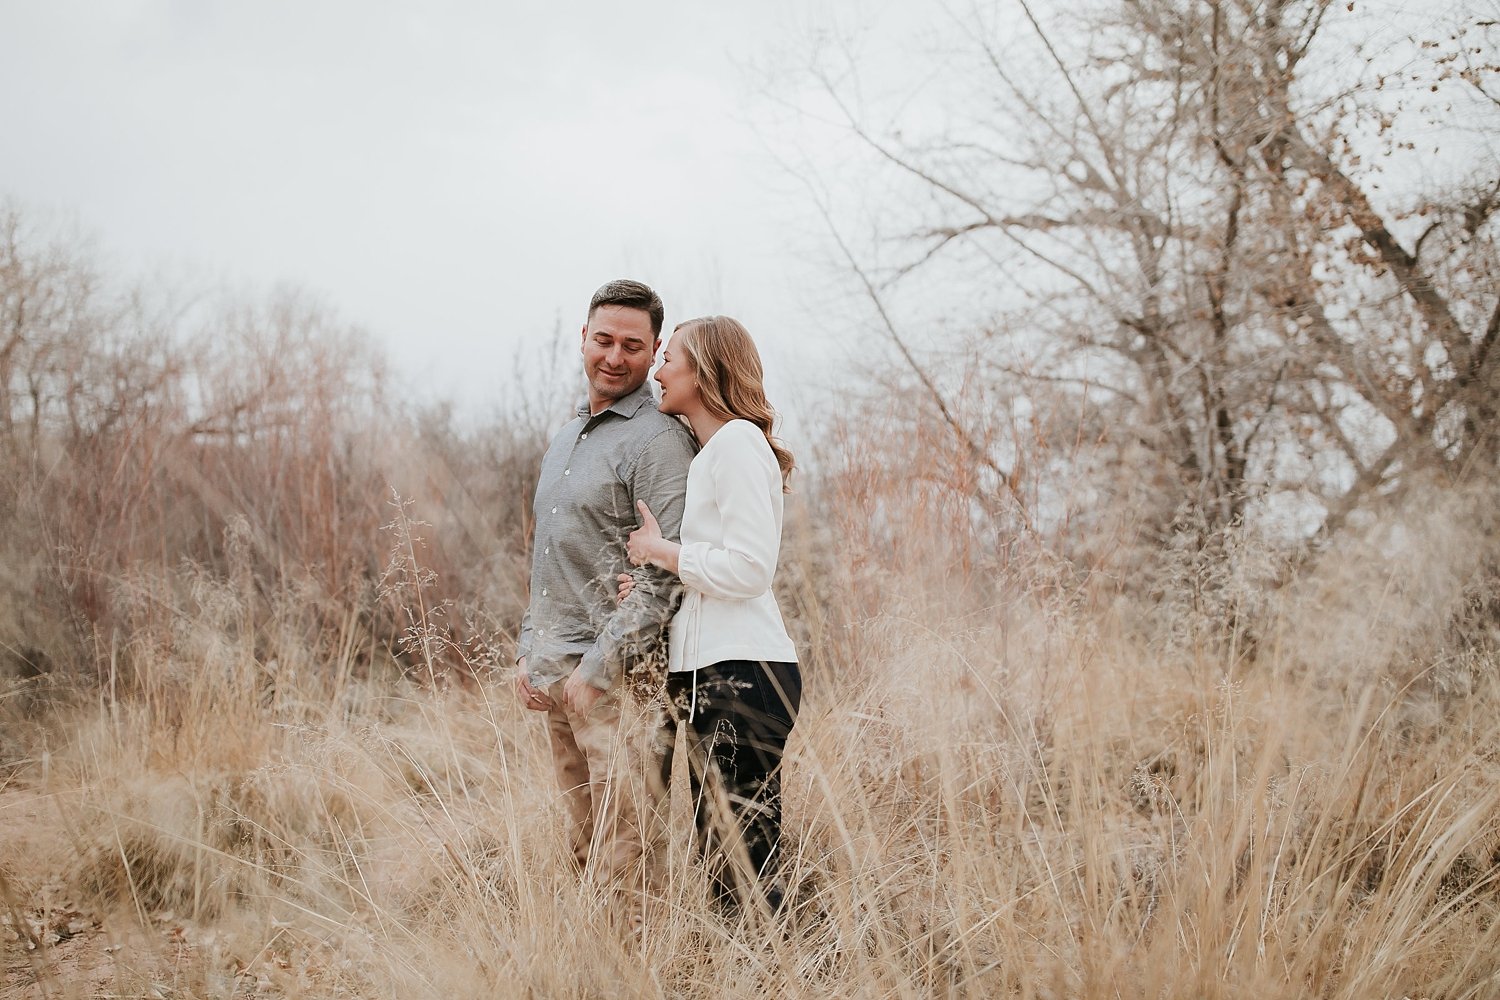 Alicia+lucia+photography+-+albuquerque+wedding+photographer+-+santa+fe+wedding+photography+-+new+mexico+wedding+photographer+-+new+mexico+engagement+-+albuquerque+engagement+-+spring+new+mexico+engagement+-+bosque+engagement_0013.jpg